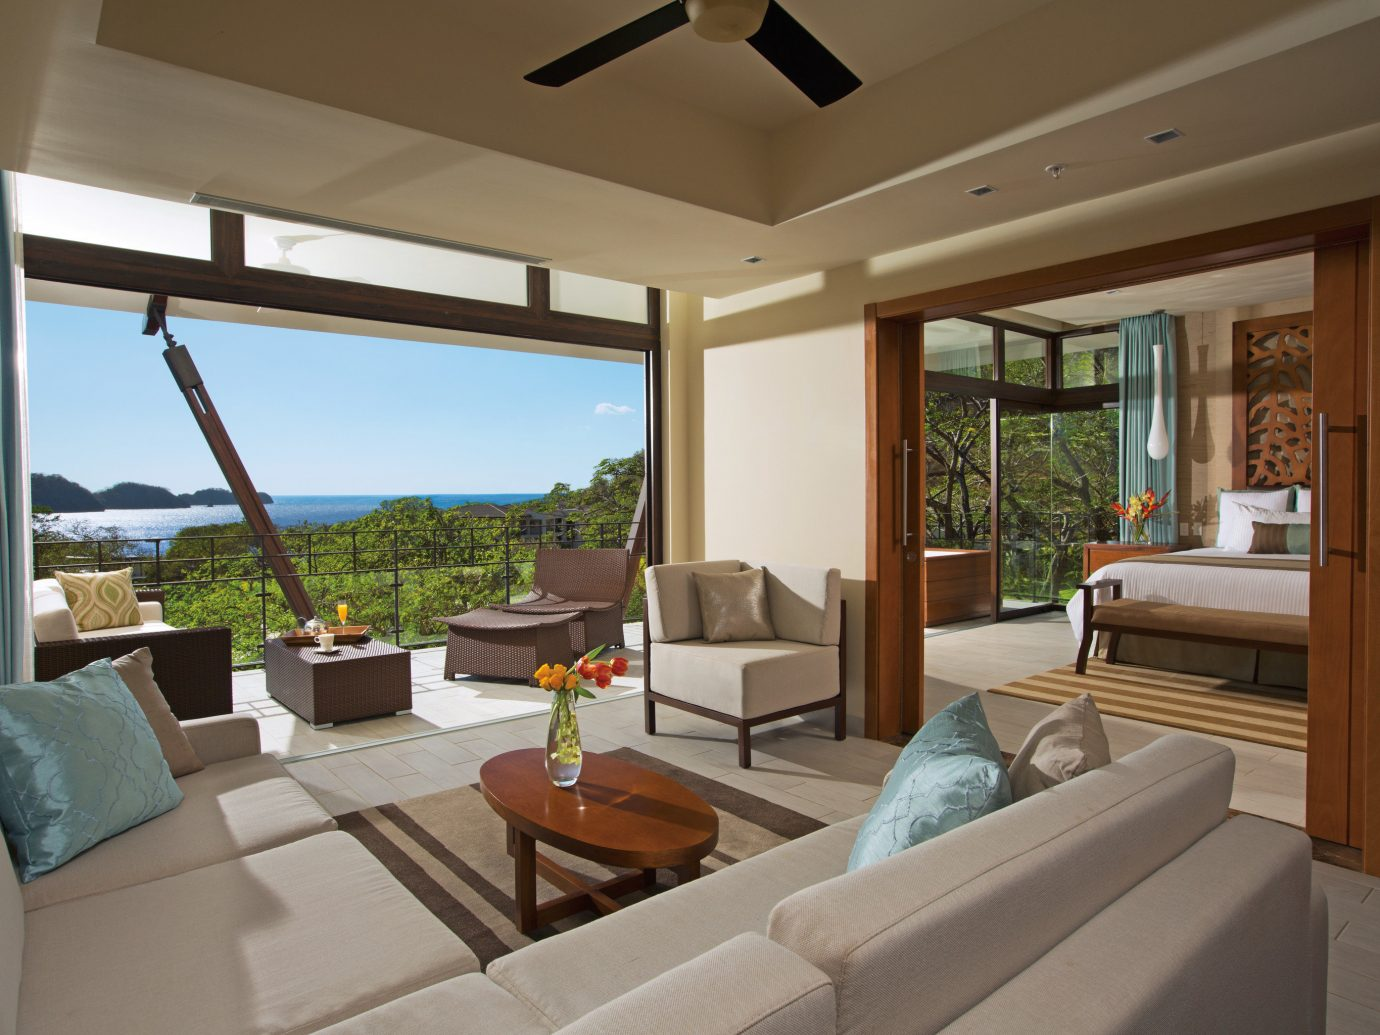 Dreams Las Mareas suite in Guanacaste, Costa Rica